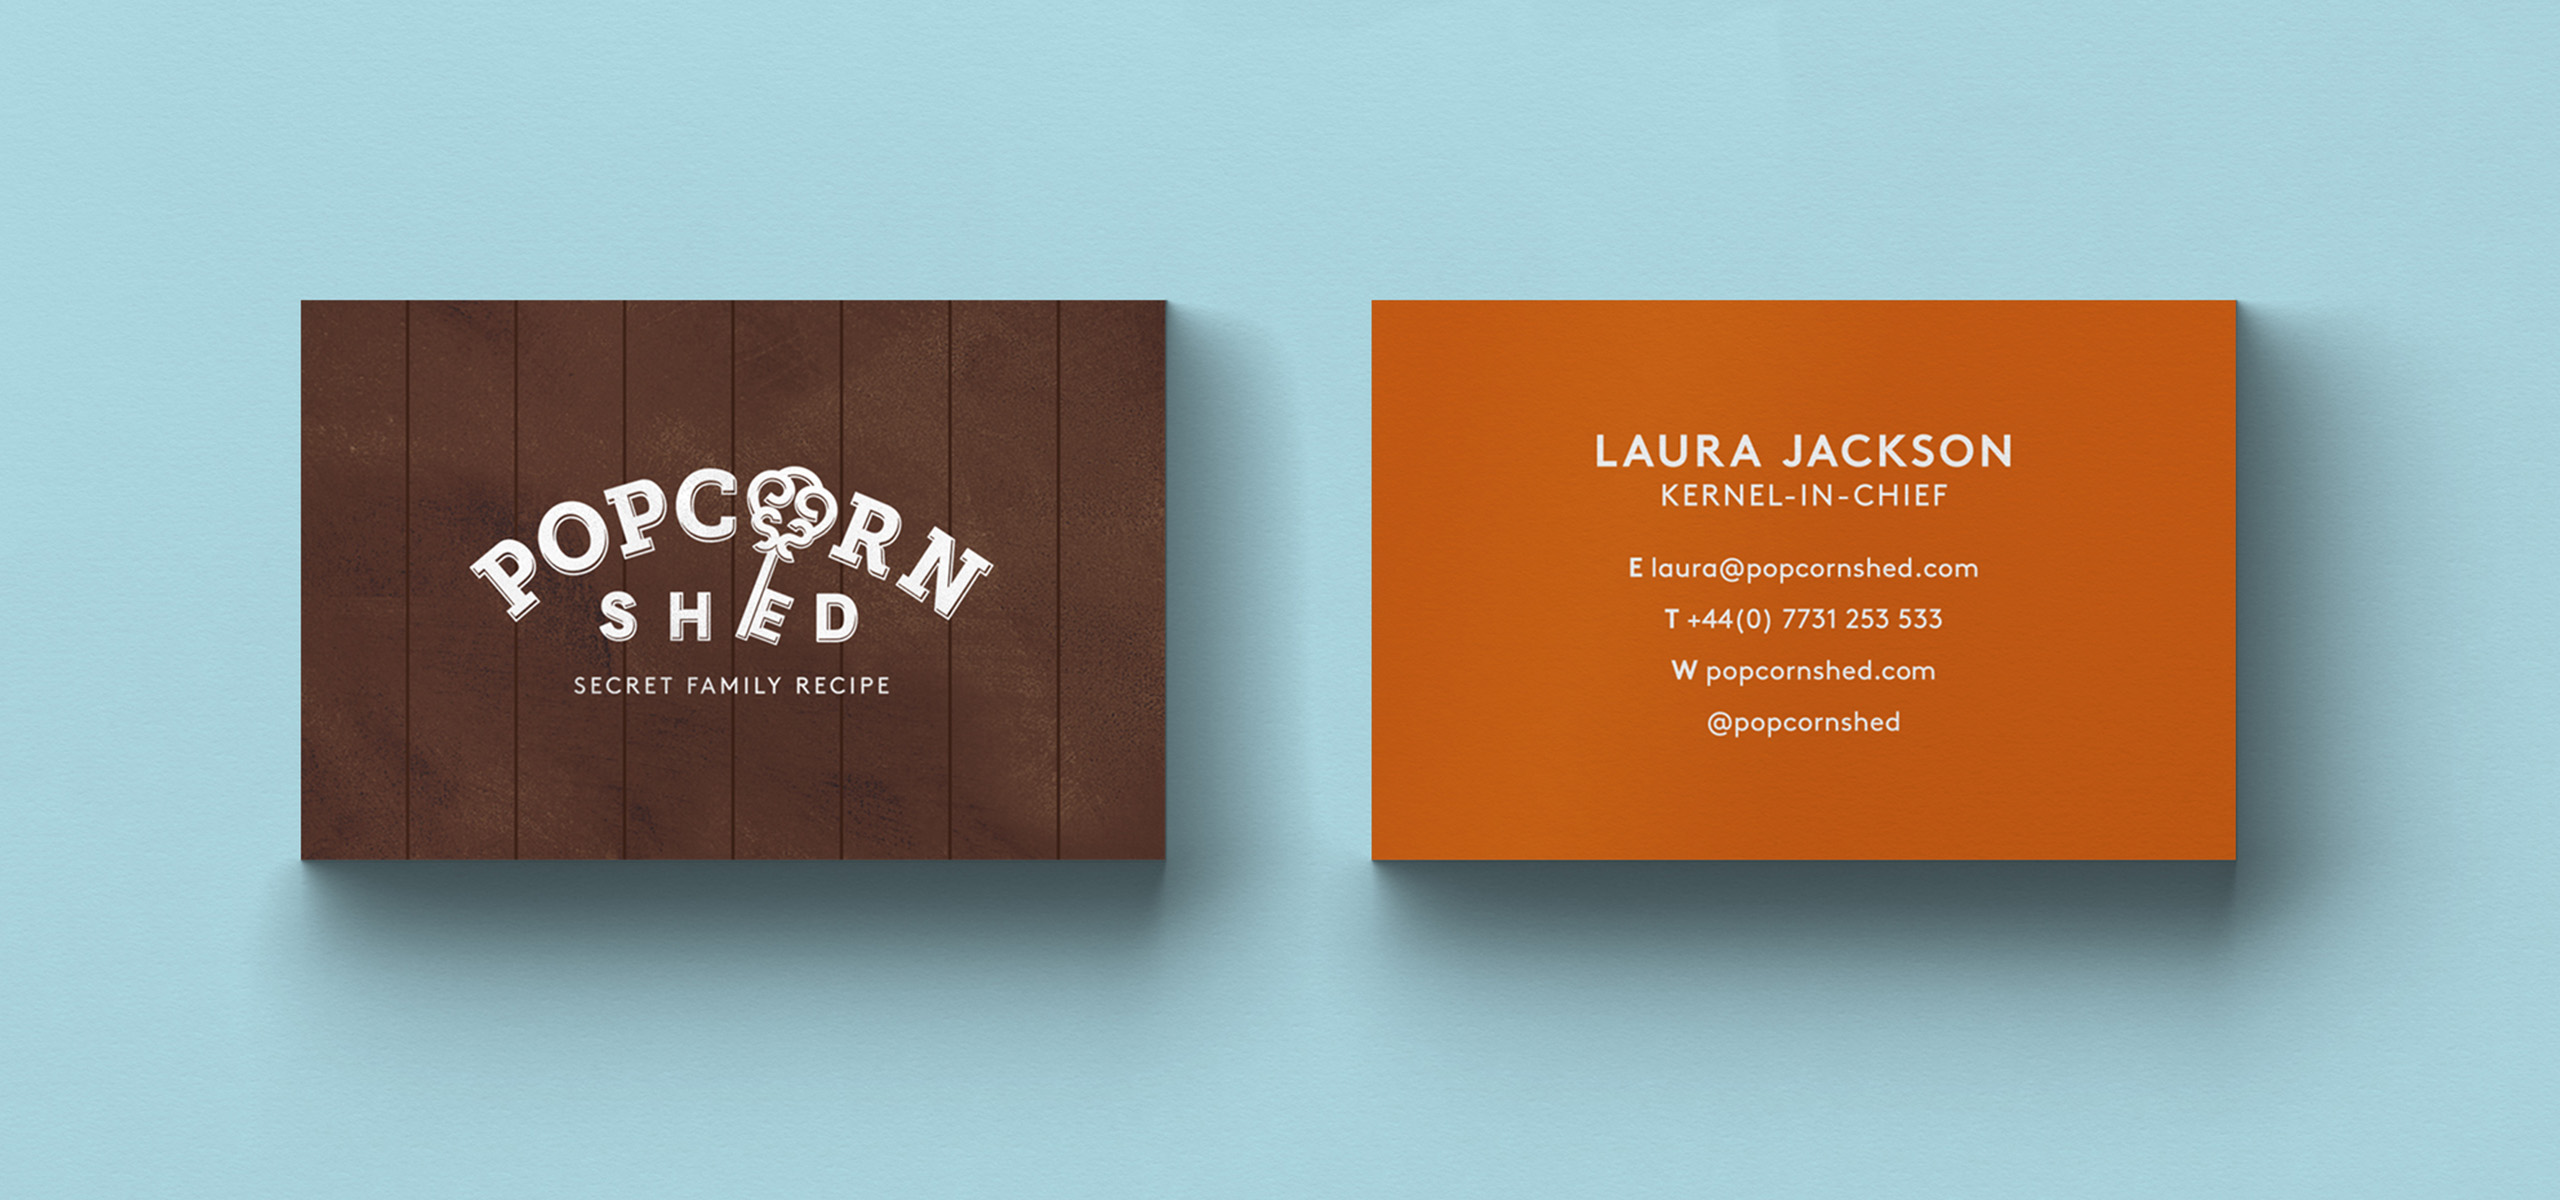 Business card design for food startup brand Popcorn Shed, designed by White Bear Studio